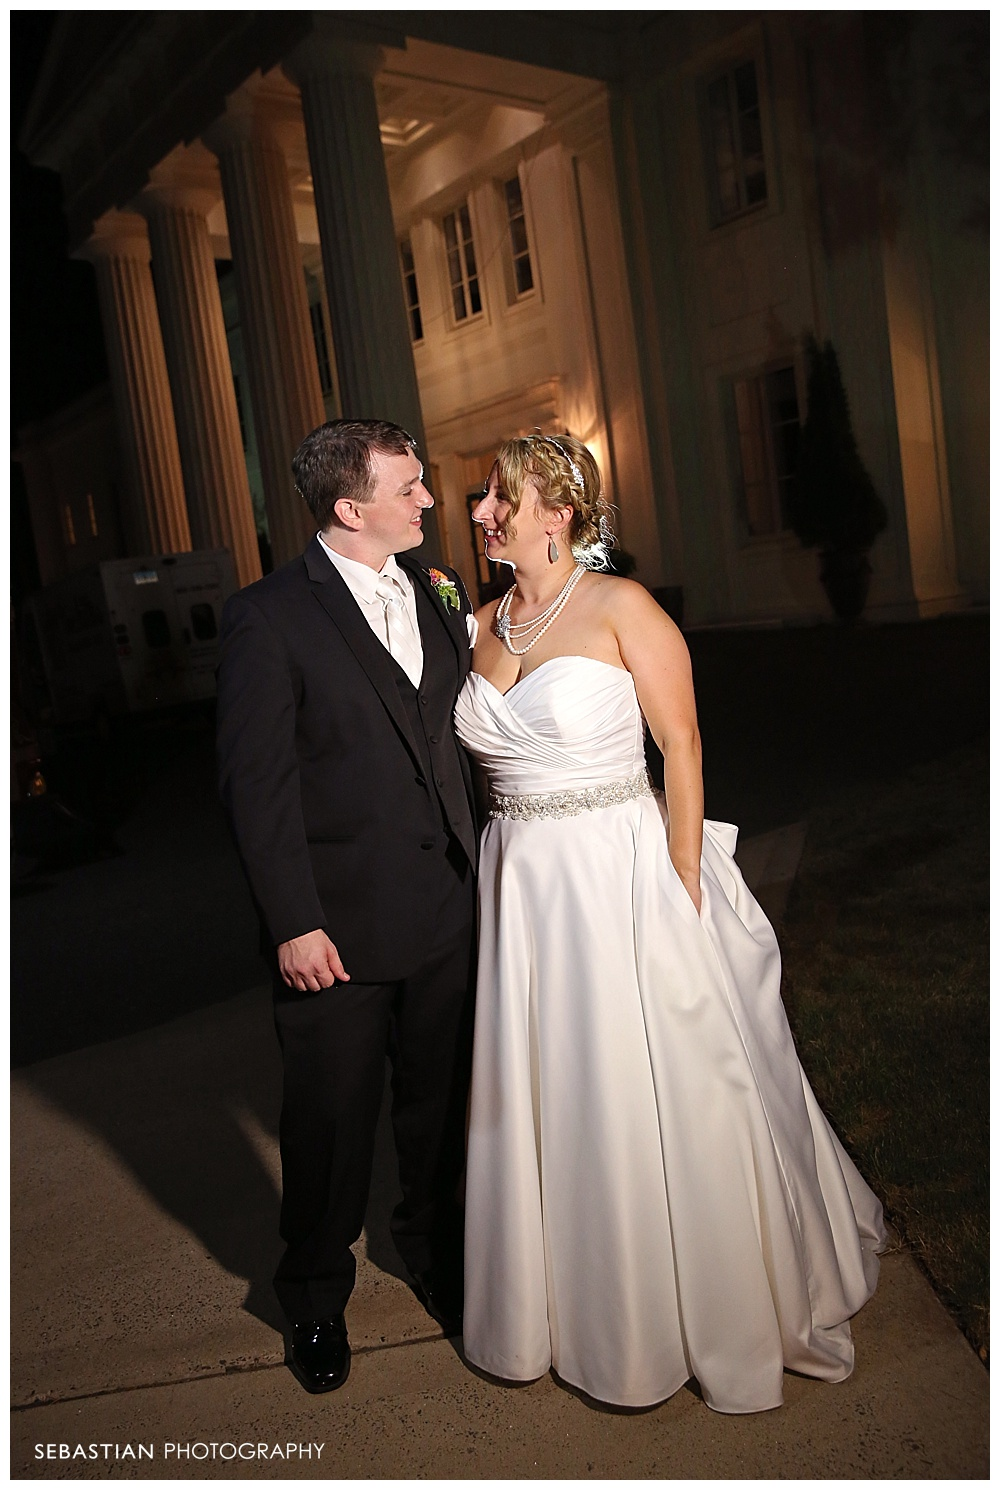 Sebastian_Photography_Wadsworth_Mansion_Wedding_Pictures_CT_64.jpg